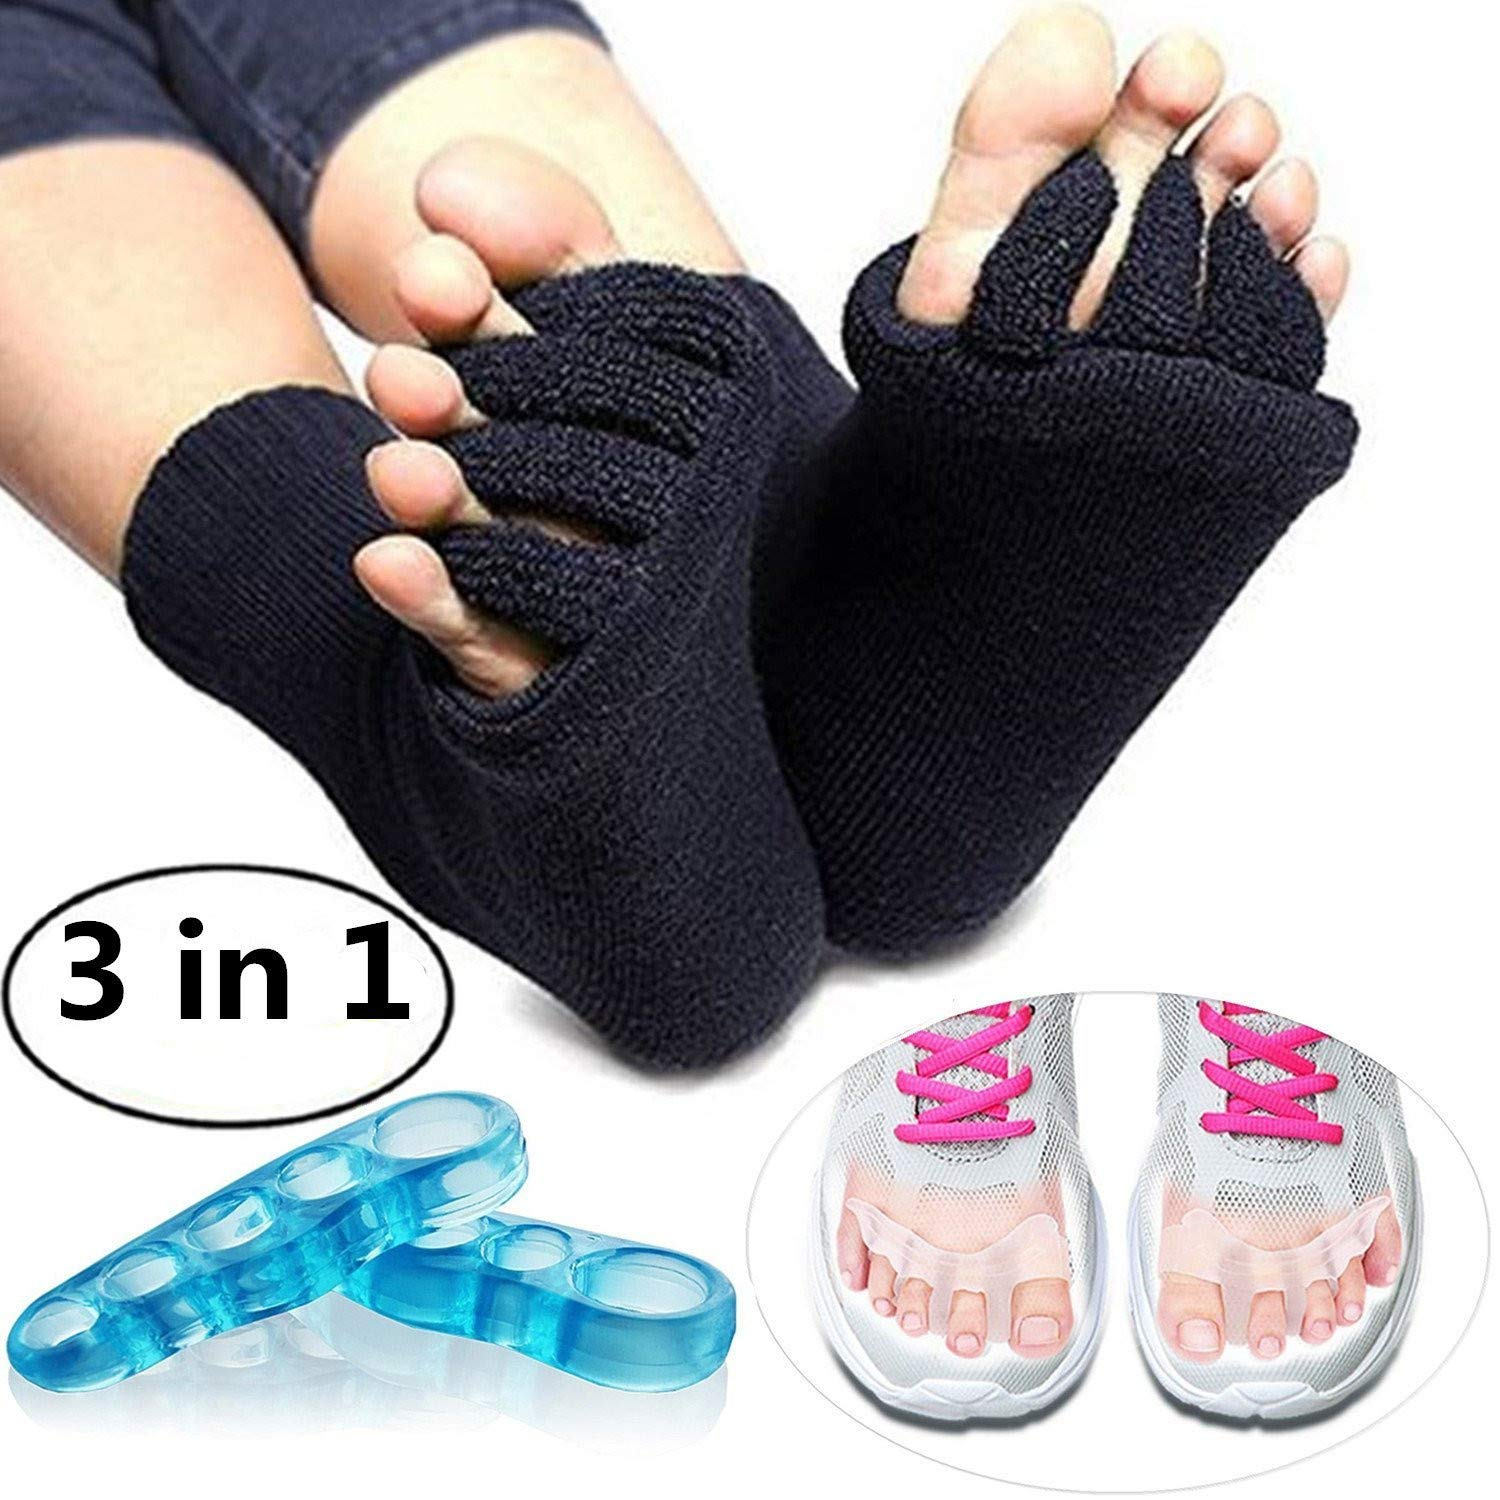 Toe Separators Set - 1 Pair, Toes Alignment Socks, Gel Toe Spacers Toe Stretchers, Instant Therapeutic Bunion Relief for Women and Men (Black)